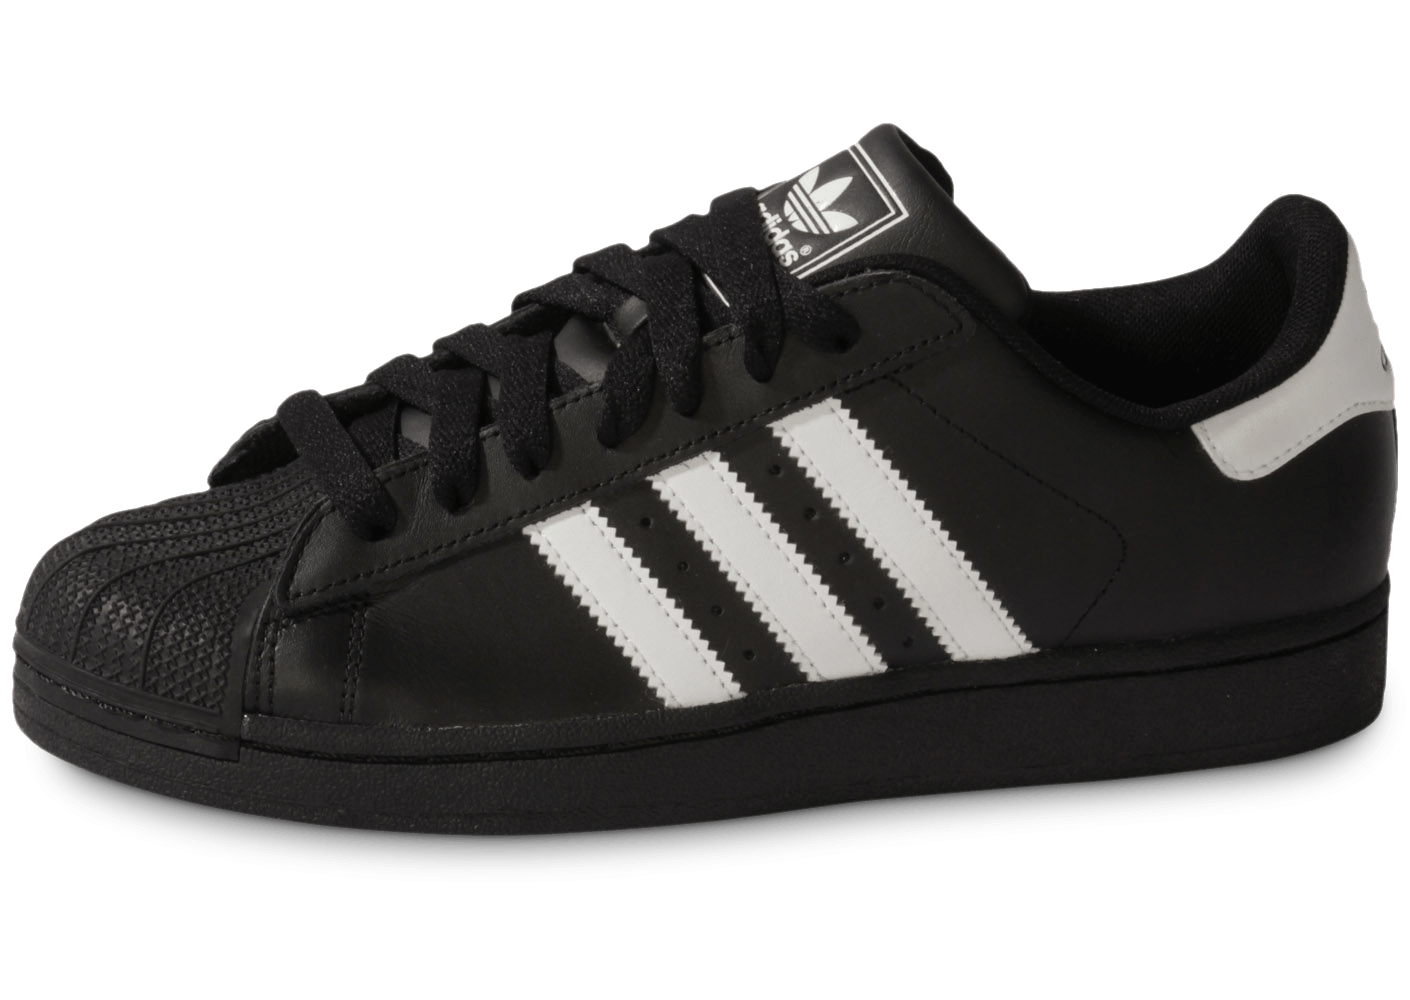 adidas superstar 2 noire chaussures homme chausport. Black Bedroom Furniture Sets. Home Design Ideas